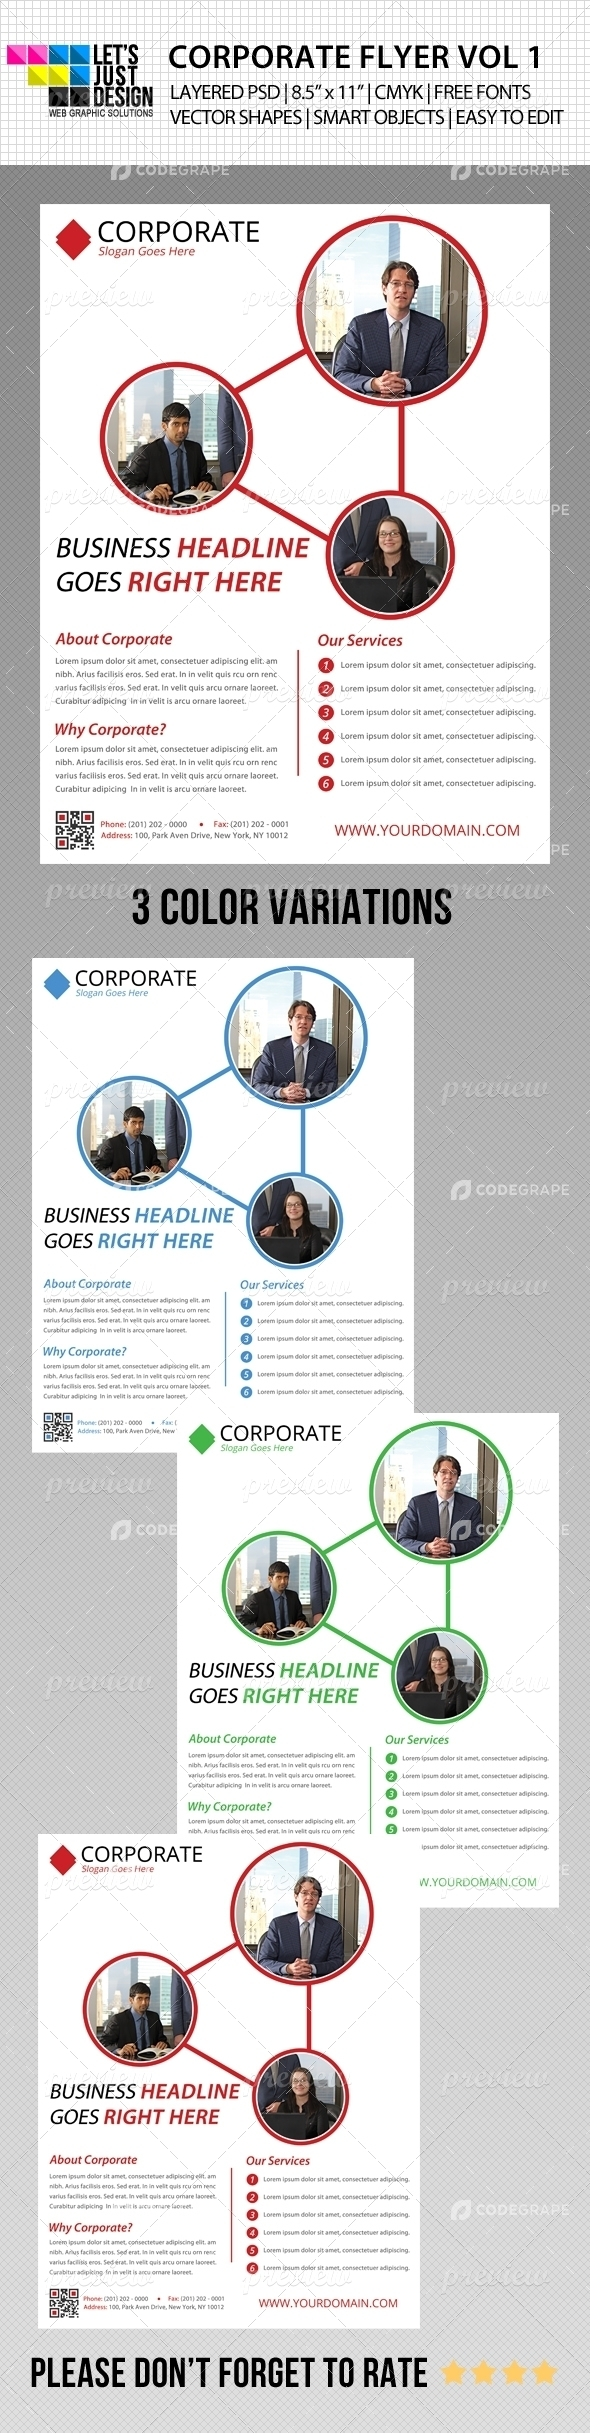 Corporate Flyer Vol 1